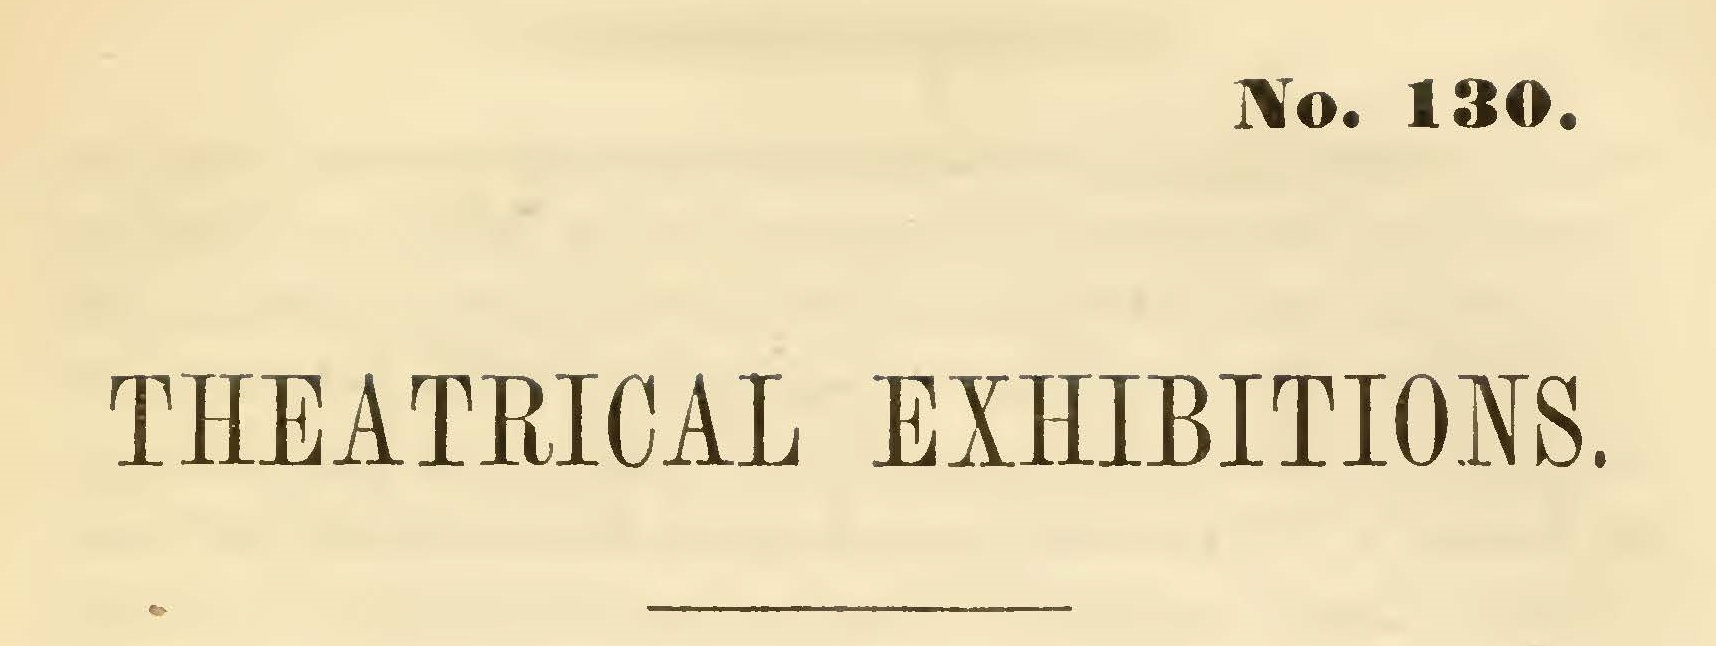 Miller, Samuel, Theatrical Exhibitions Title Page.jpg